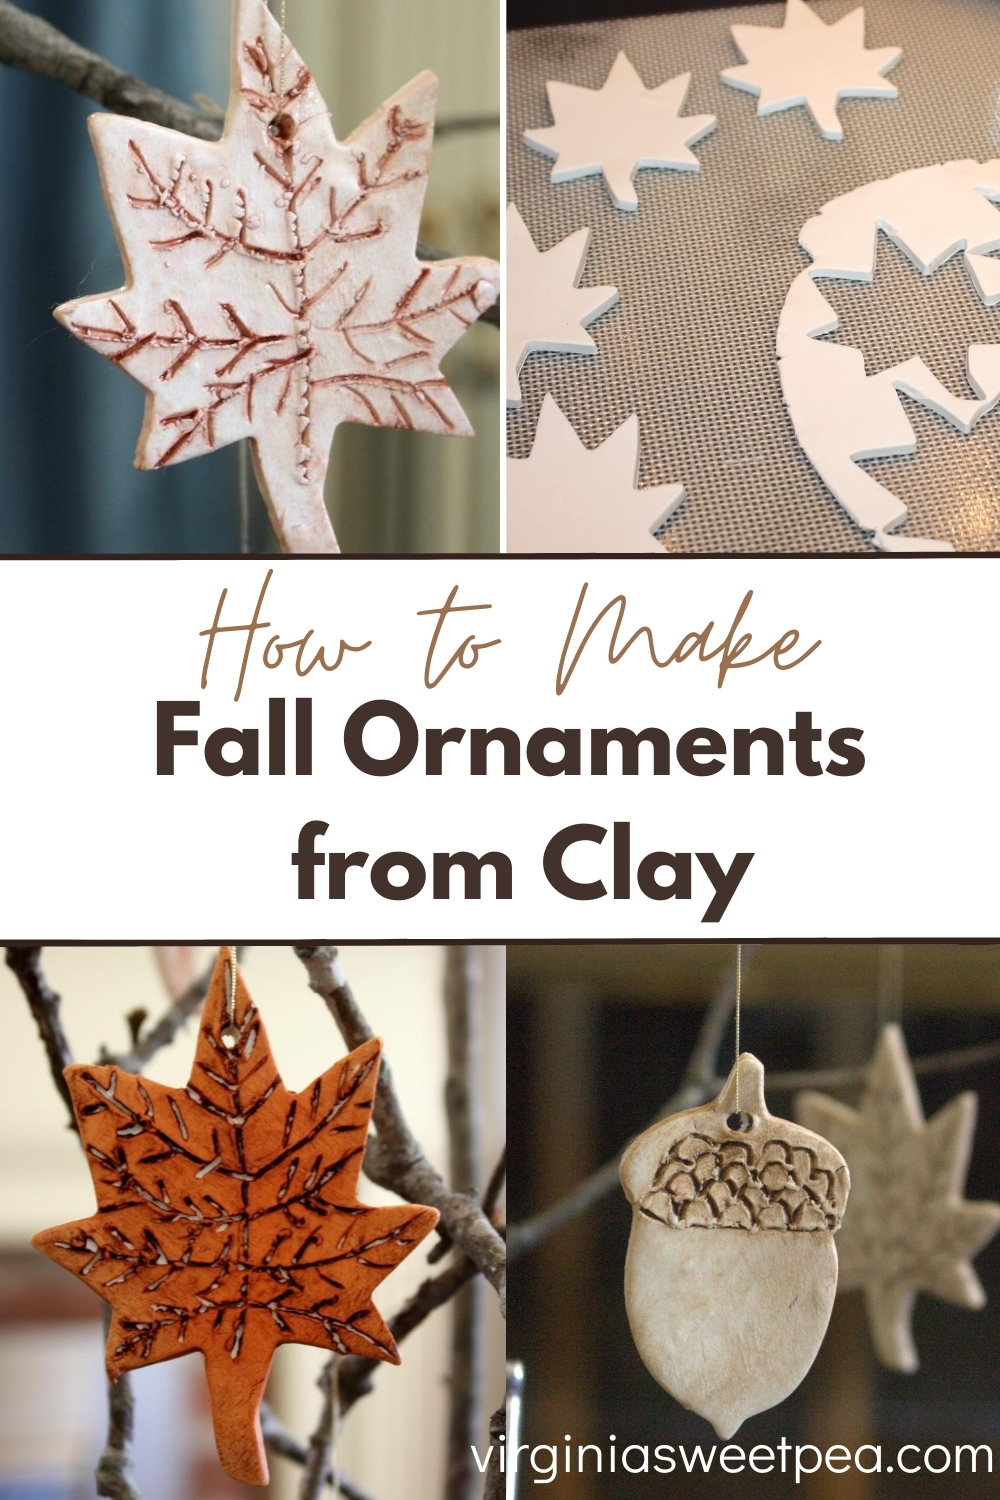 How to Make Fall Ornaments from Clay - Learn how to make decorative leaves from clay to use for fall decor.  #fallcraft via @spaula